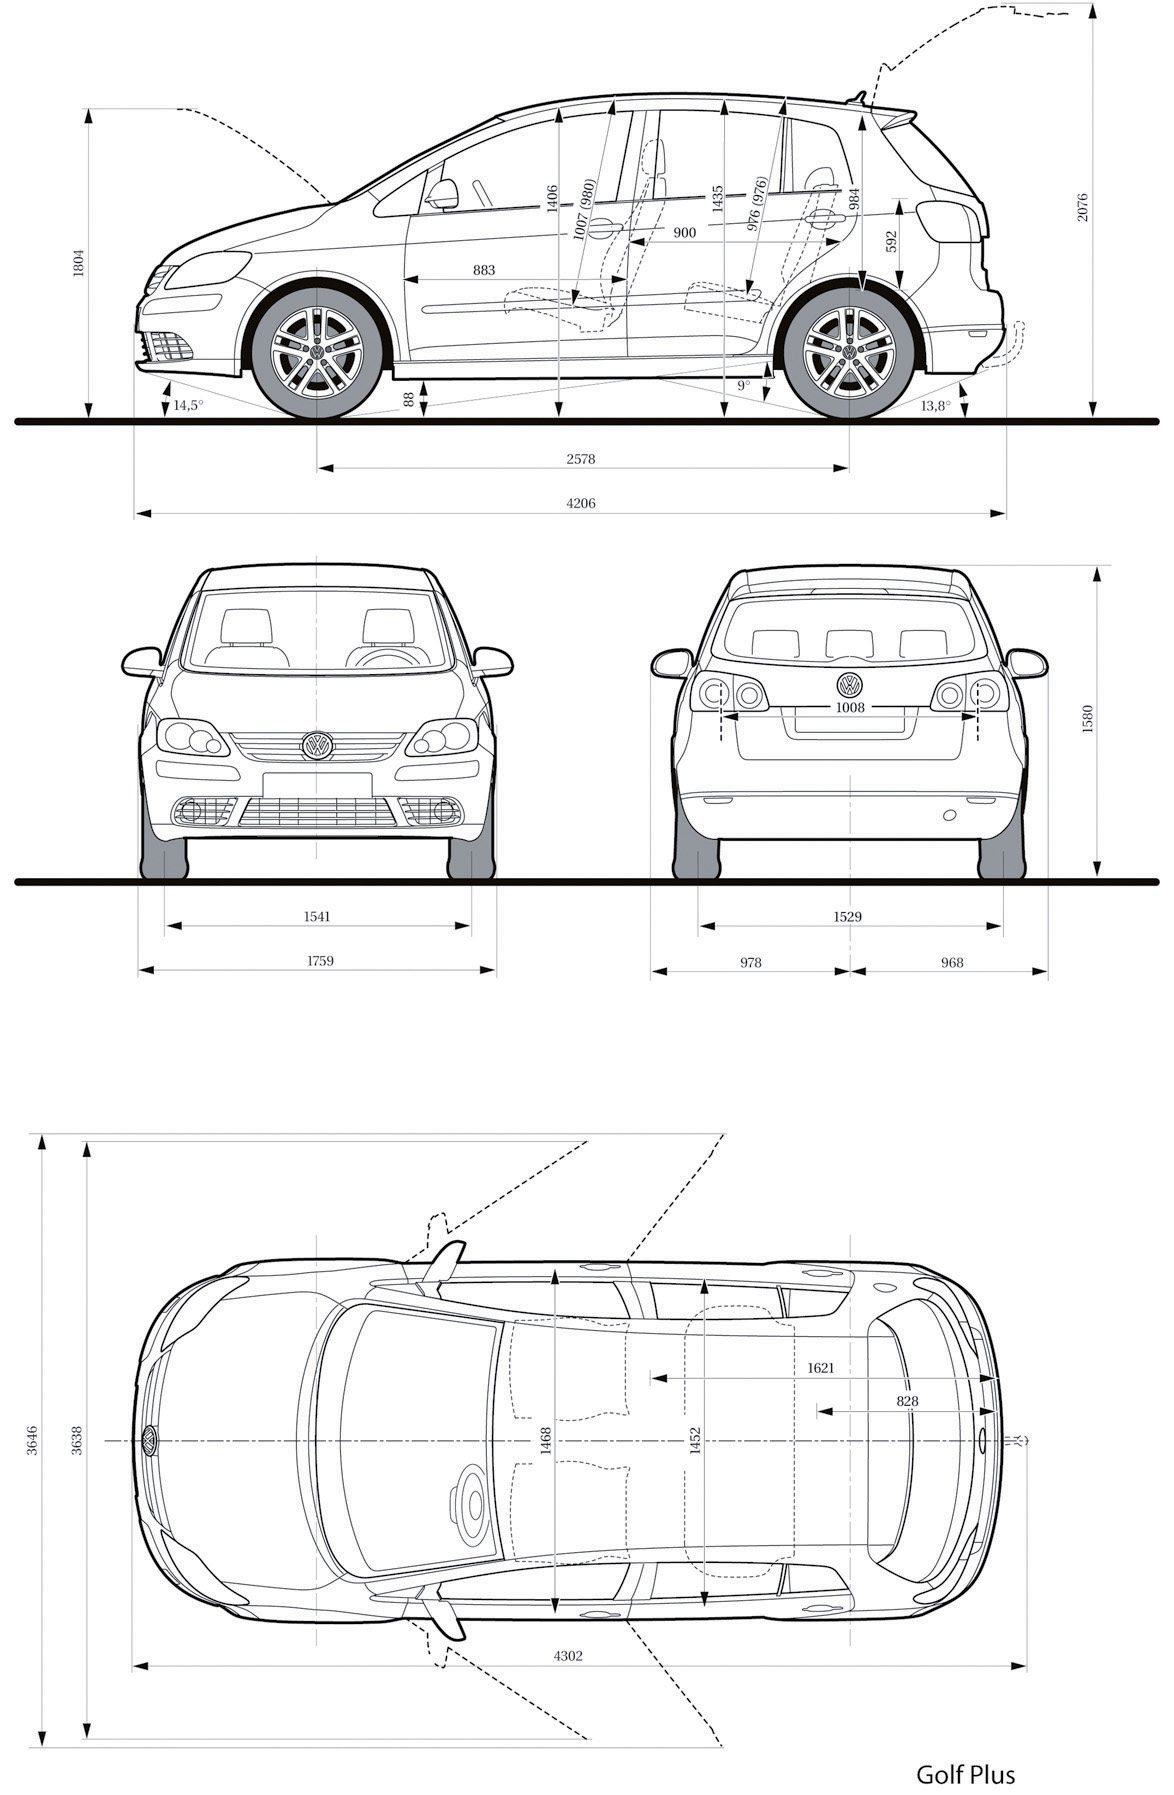 Volkswagen golf plus 2005 blueprint download free blueprint for 3d volkswagen golf plus blueprint malvernweather